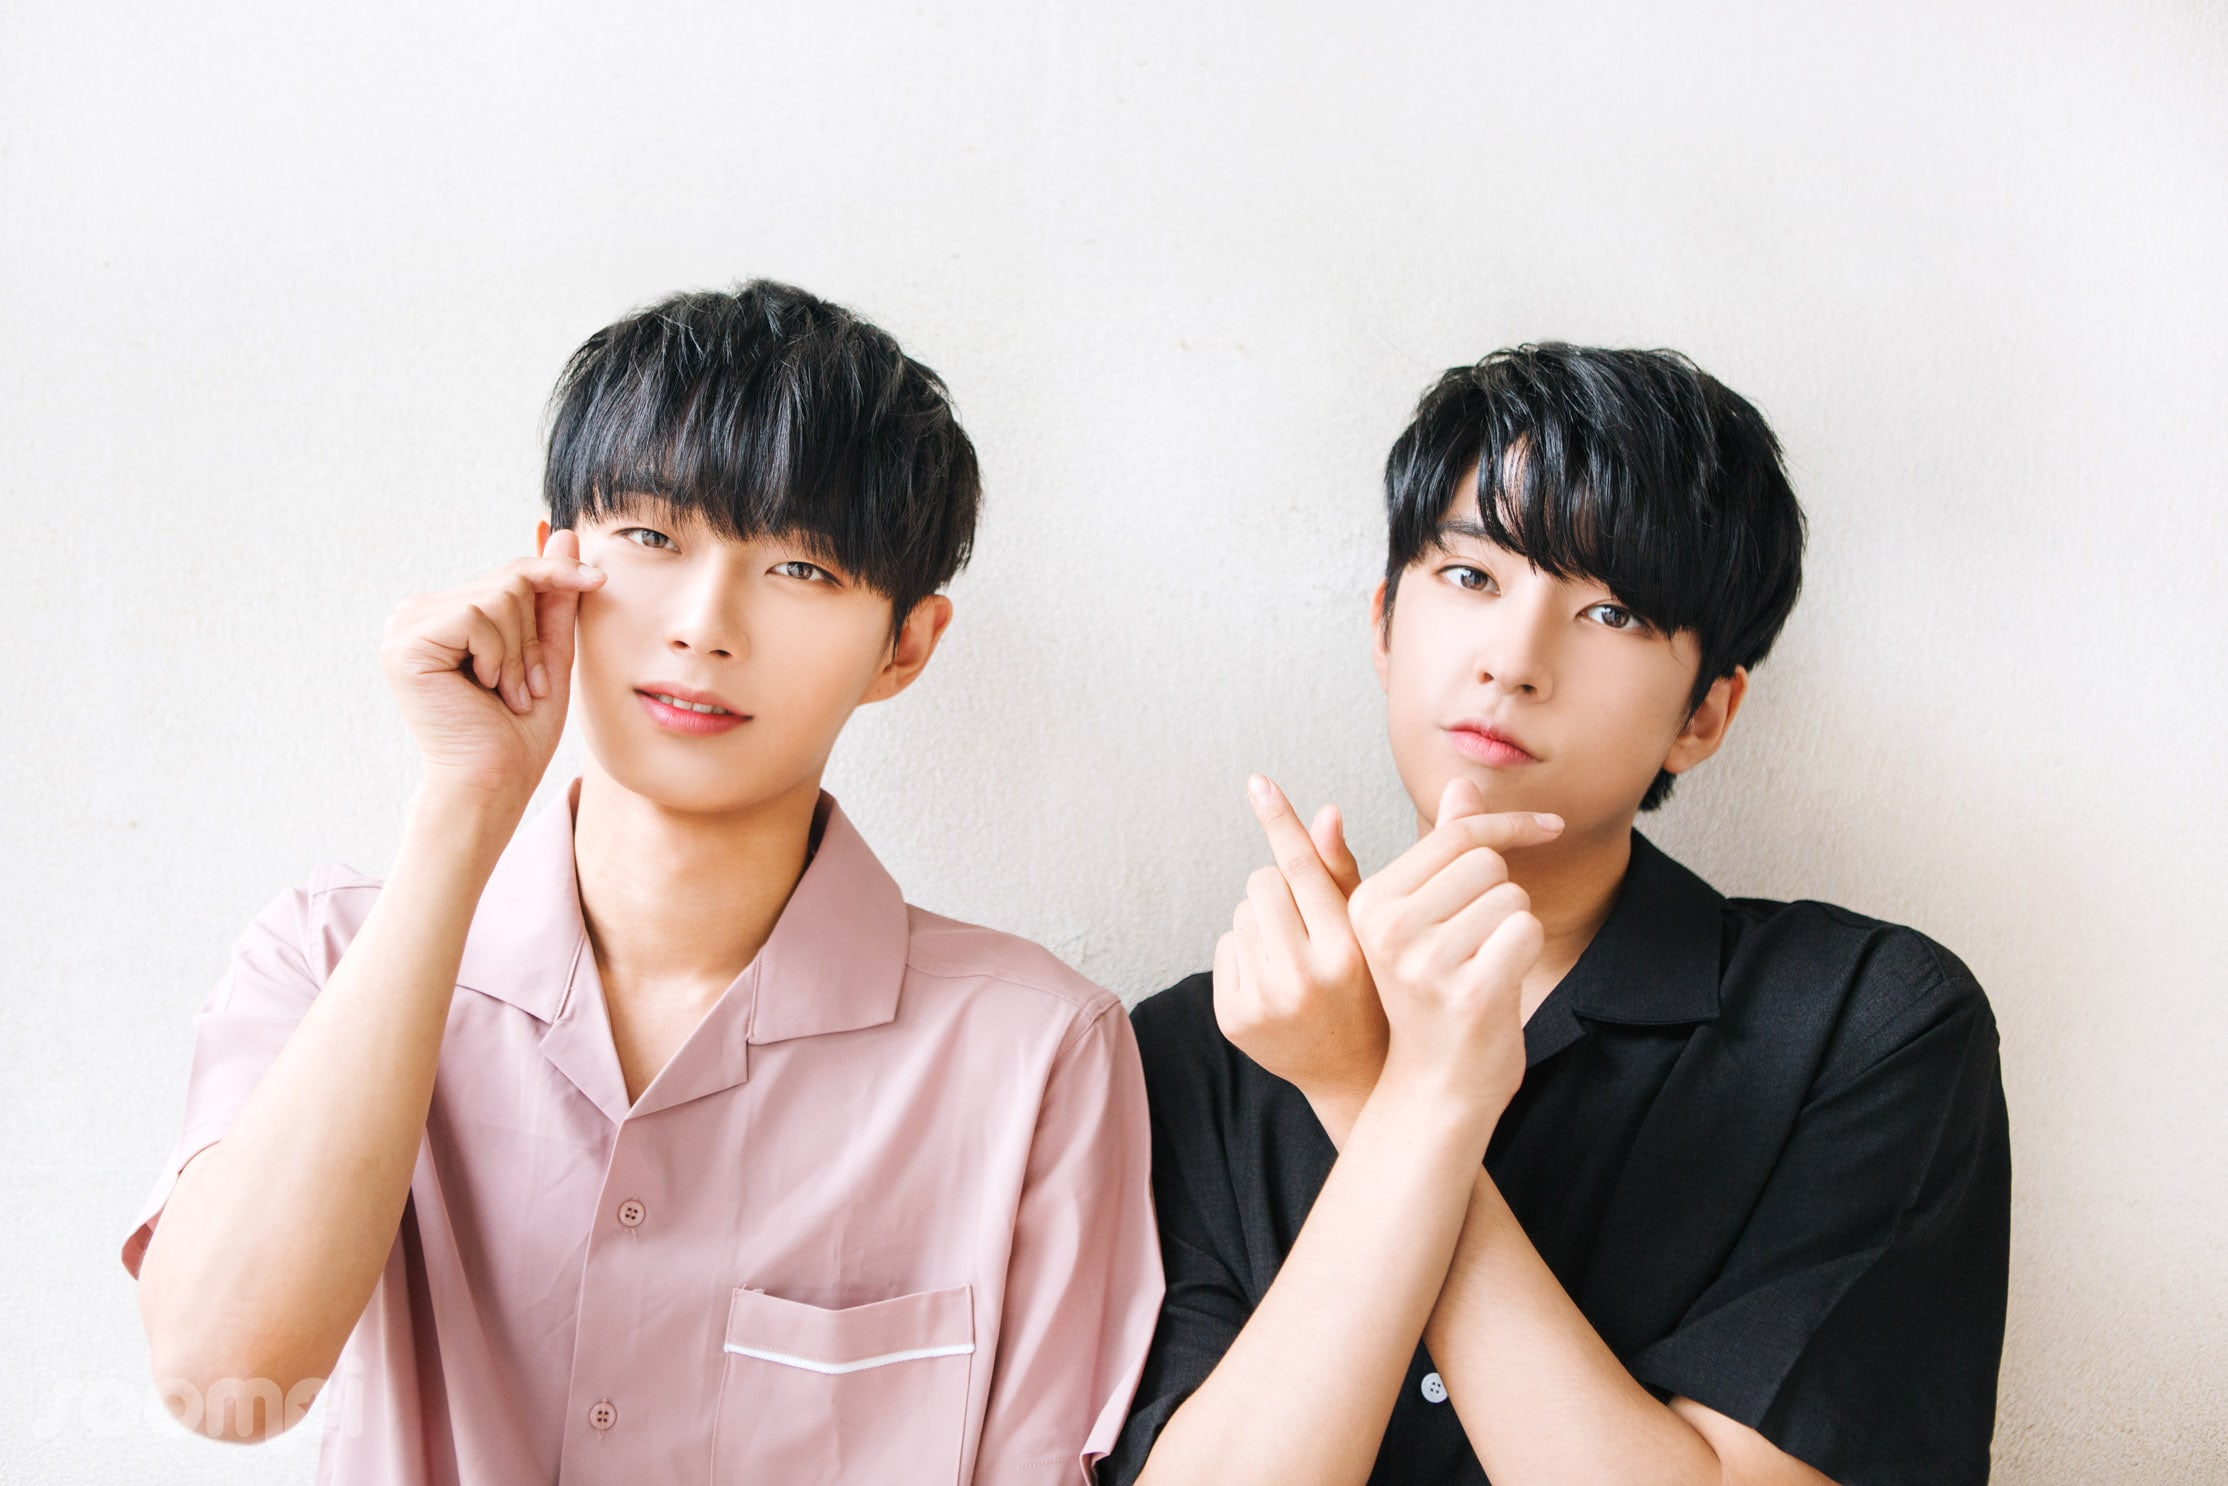 Exclusive: Longguo&Shihyun Share Their Self-Written Profiles, Revealing Their Inner Thoughts, Strange Nicknames, And More